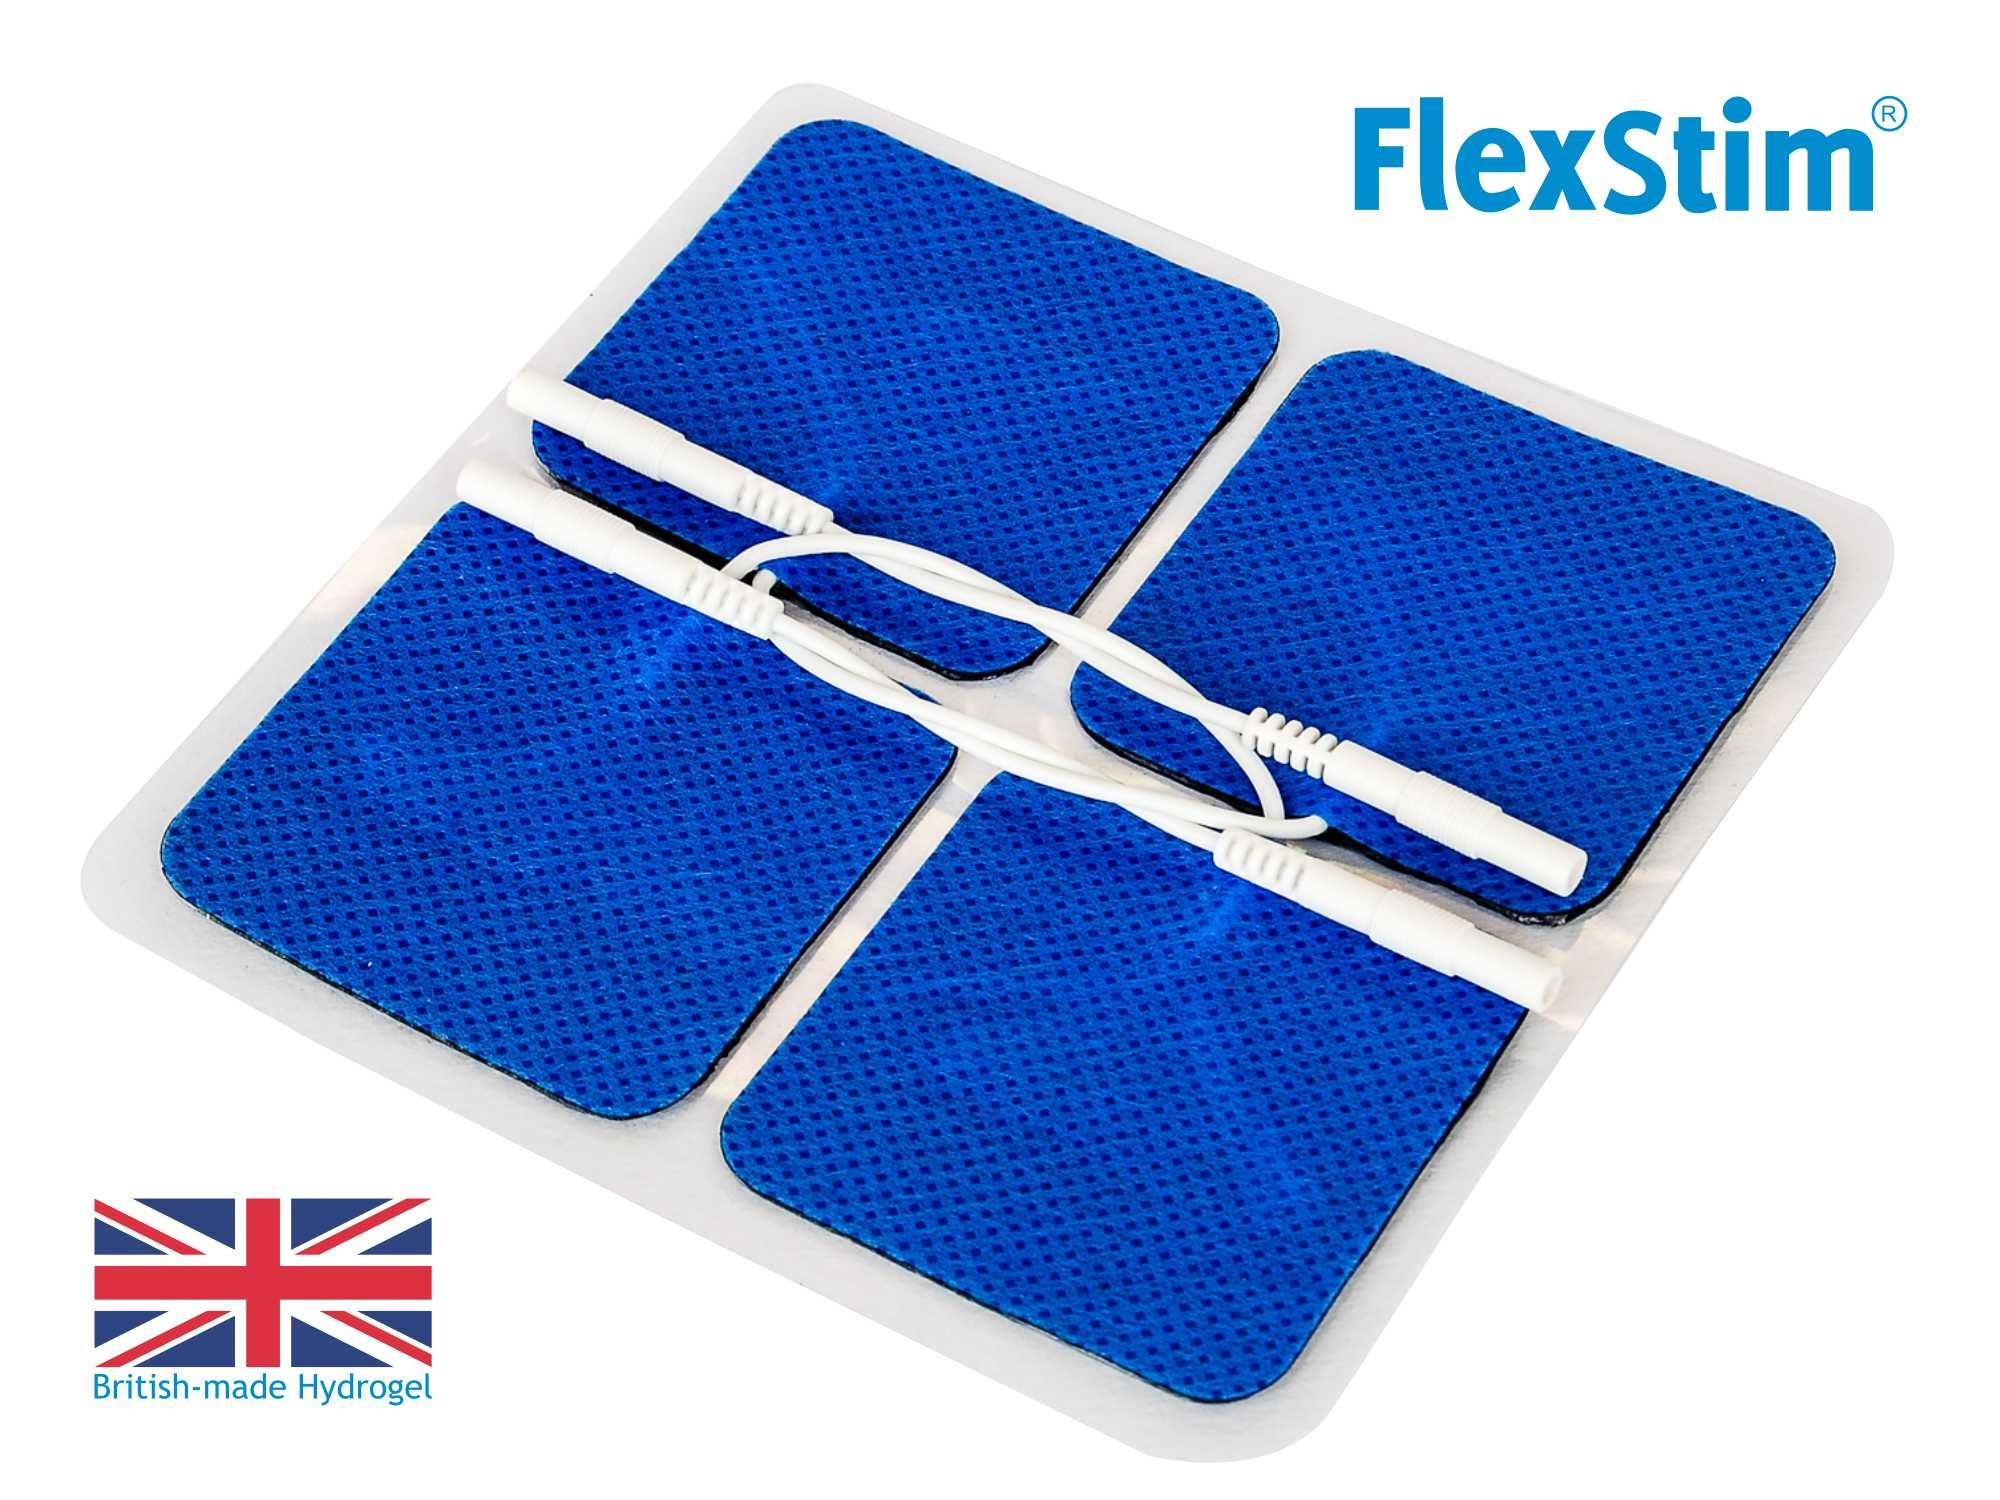 FlexStim 2'' Square TENS/EMS Electrode Pads with Pigtail Connector, Supplied with British made Premium Hydrogel - Compatible with Most TENS/EMS Units - Flexible Tens Pads – Easy to use. (20)